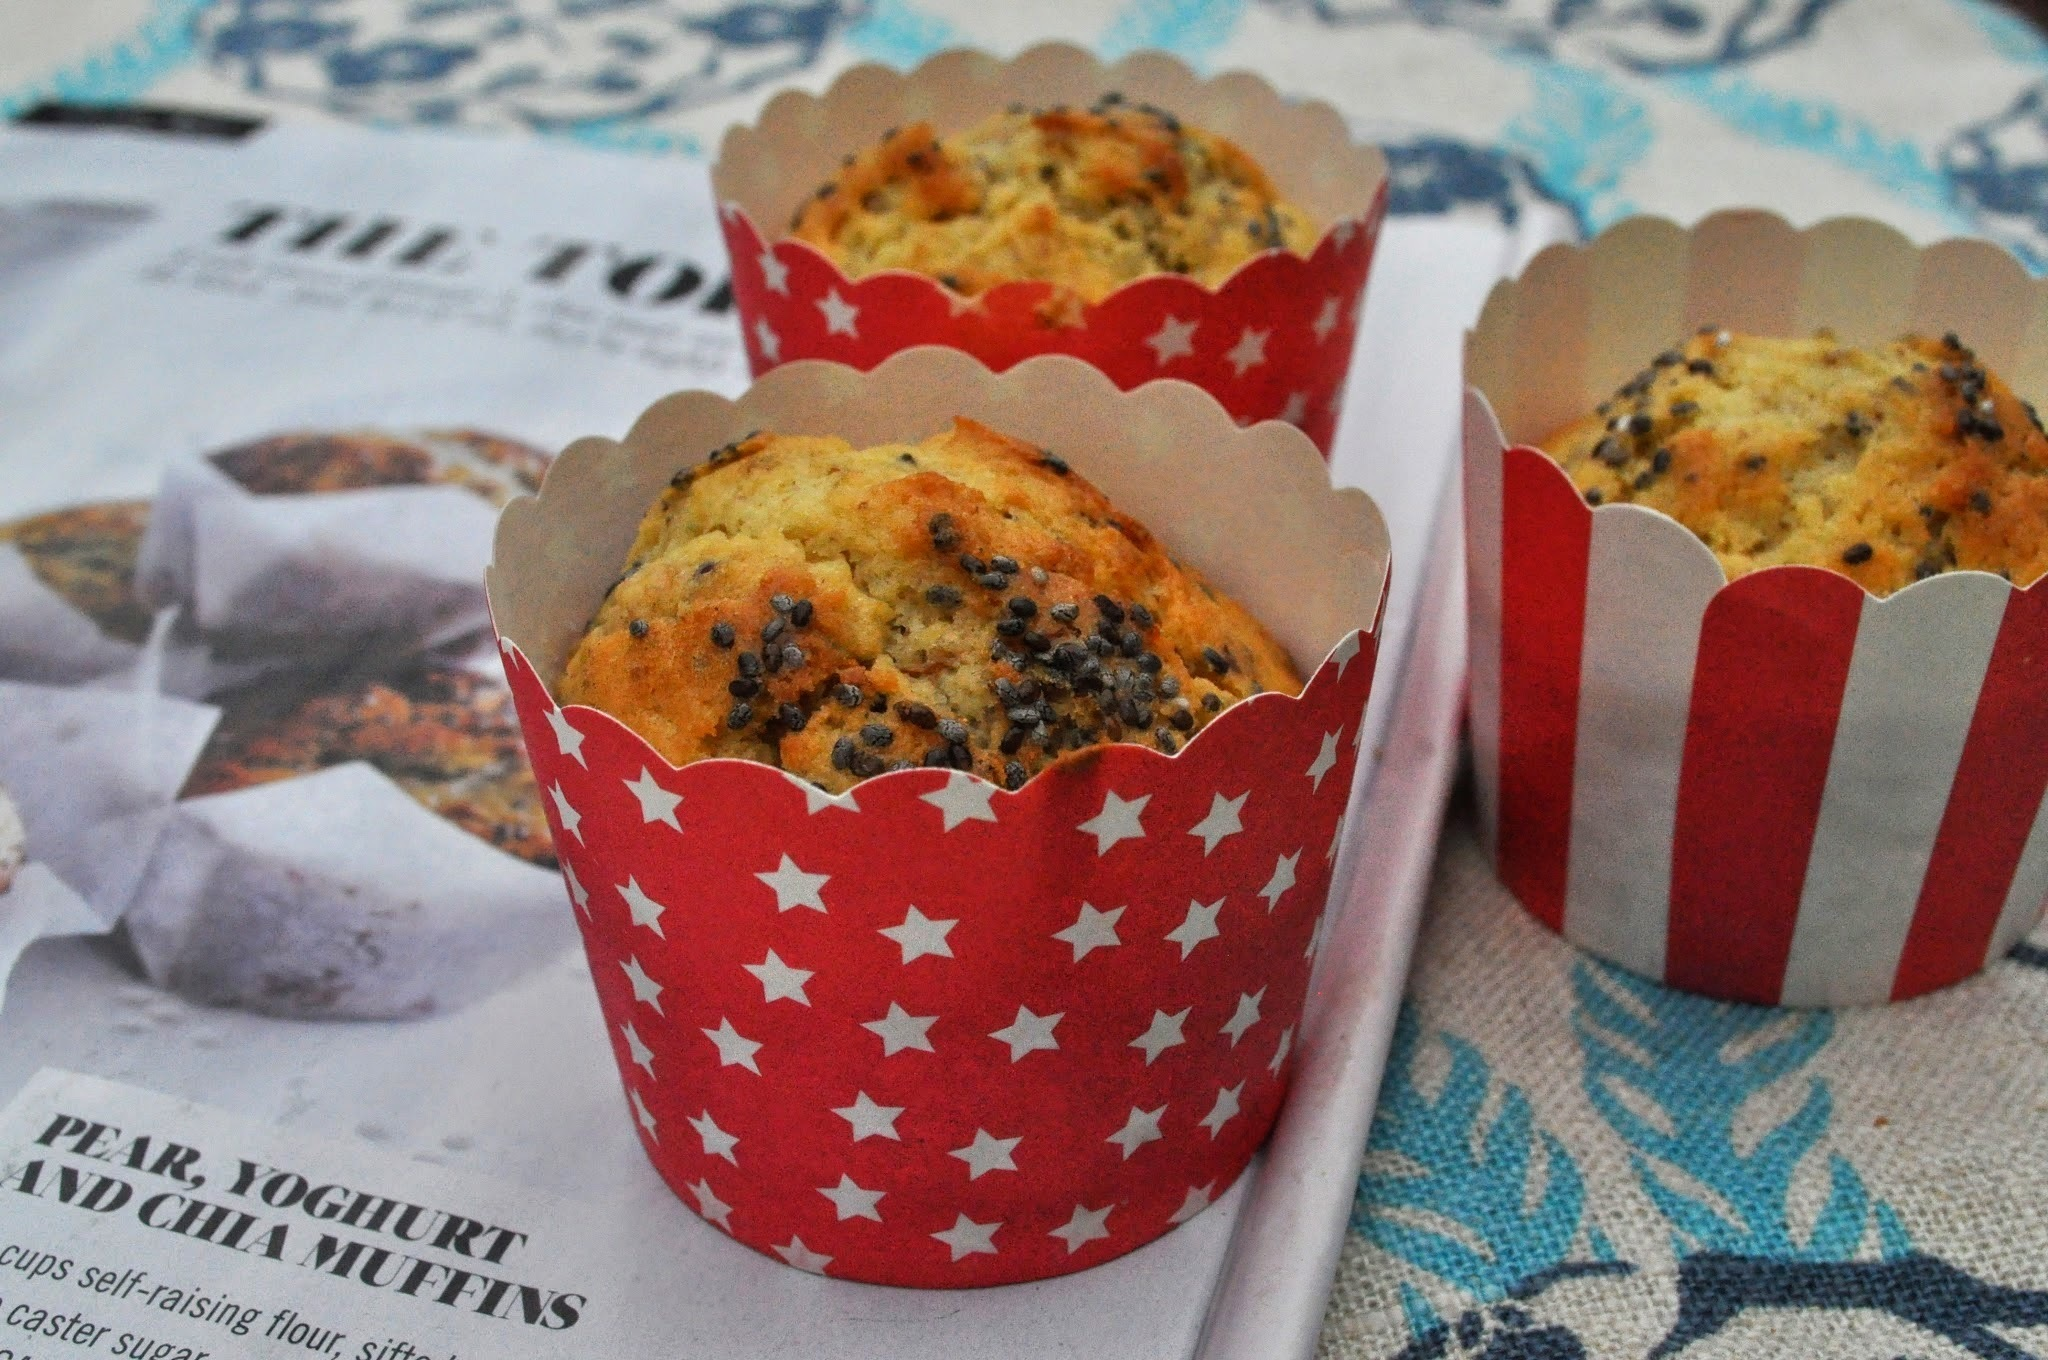 Sharing the love…Donna Hay's Pear, Yoghurt & Chia Muffins!